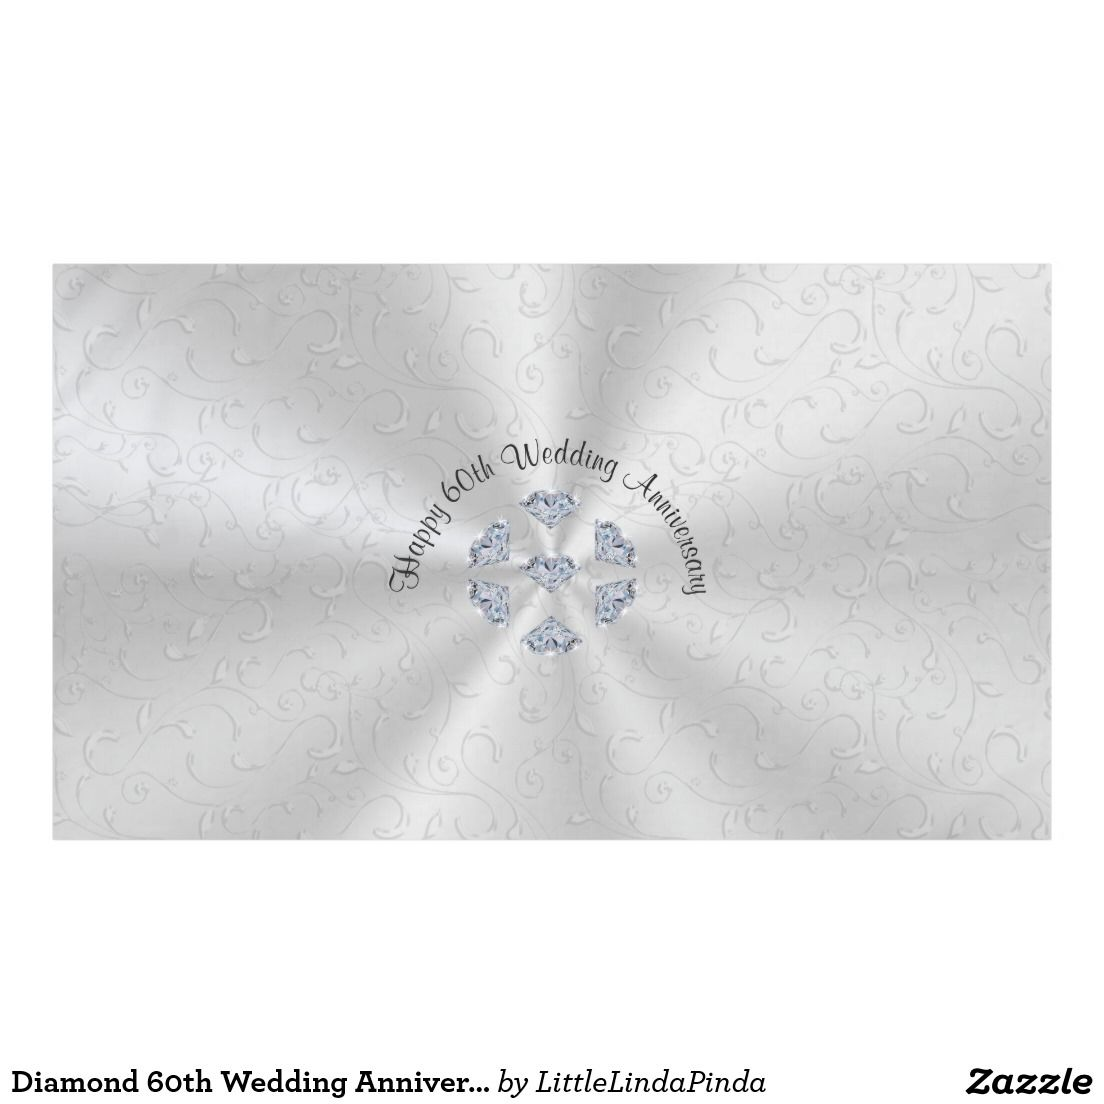 Diamond 60th Wedding Anniversary Table Decorations Tablecloth | 60 ...